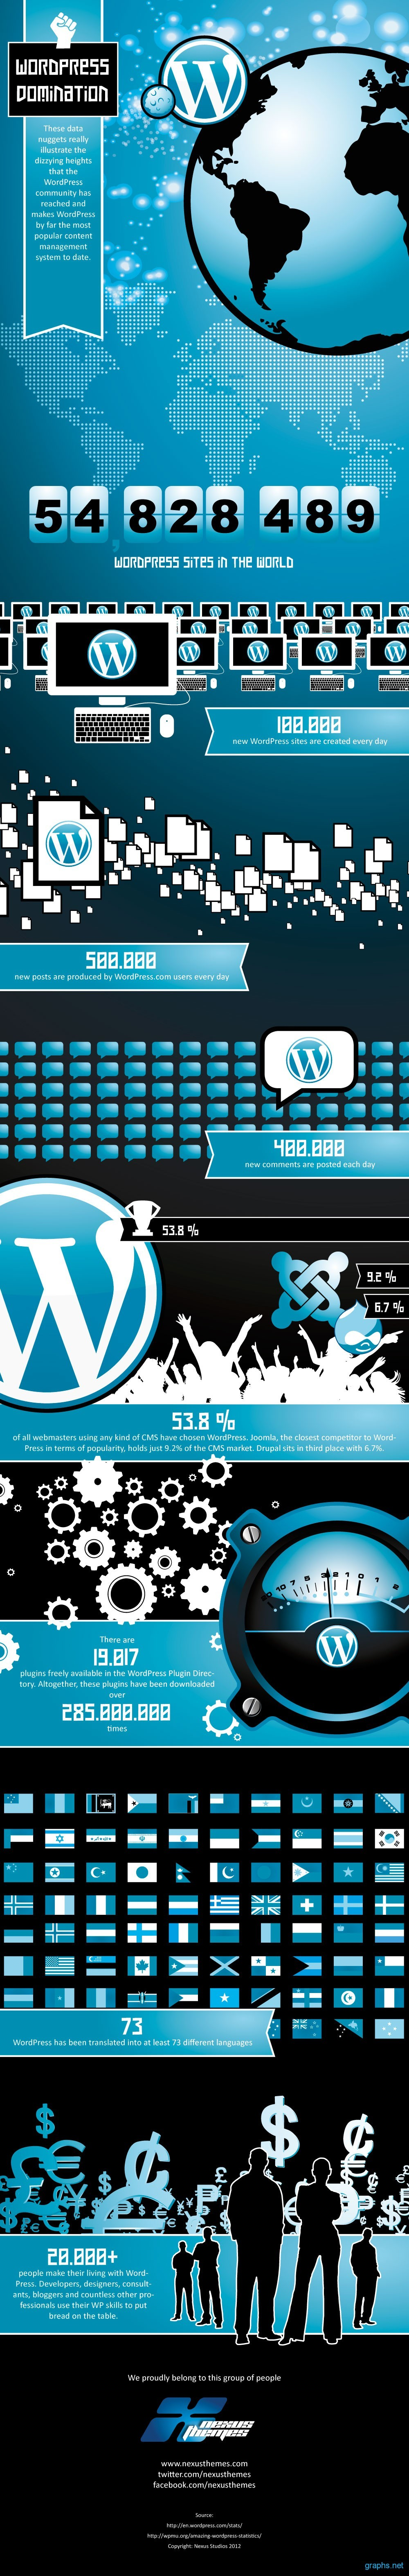 Wordpress Domination CMS